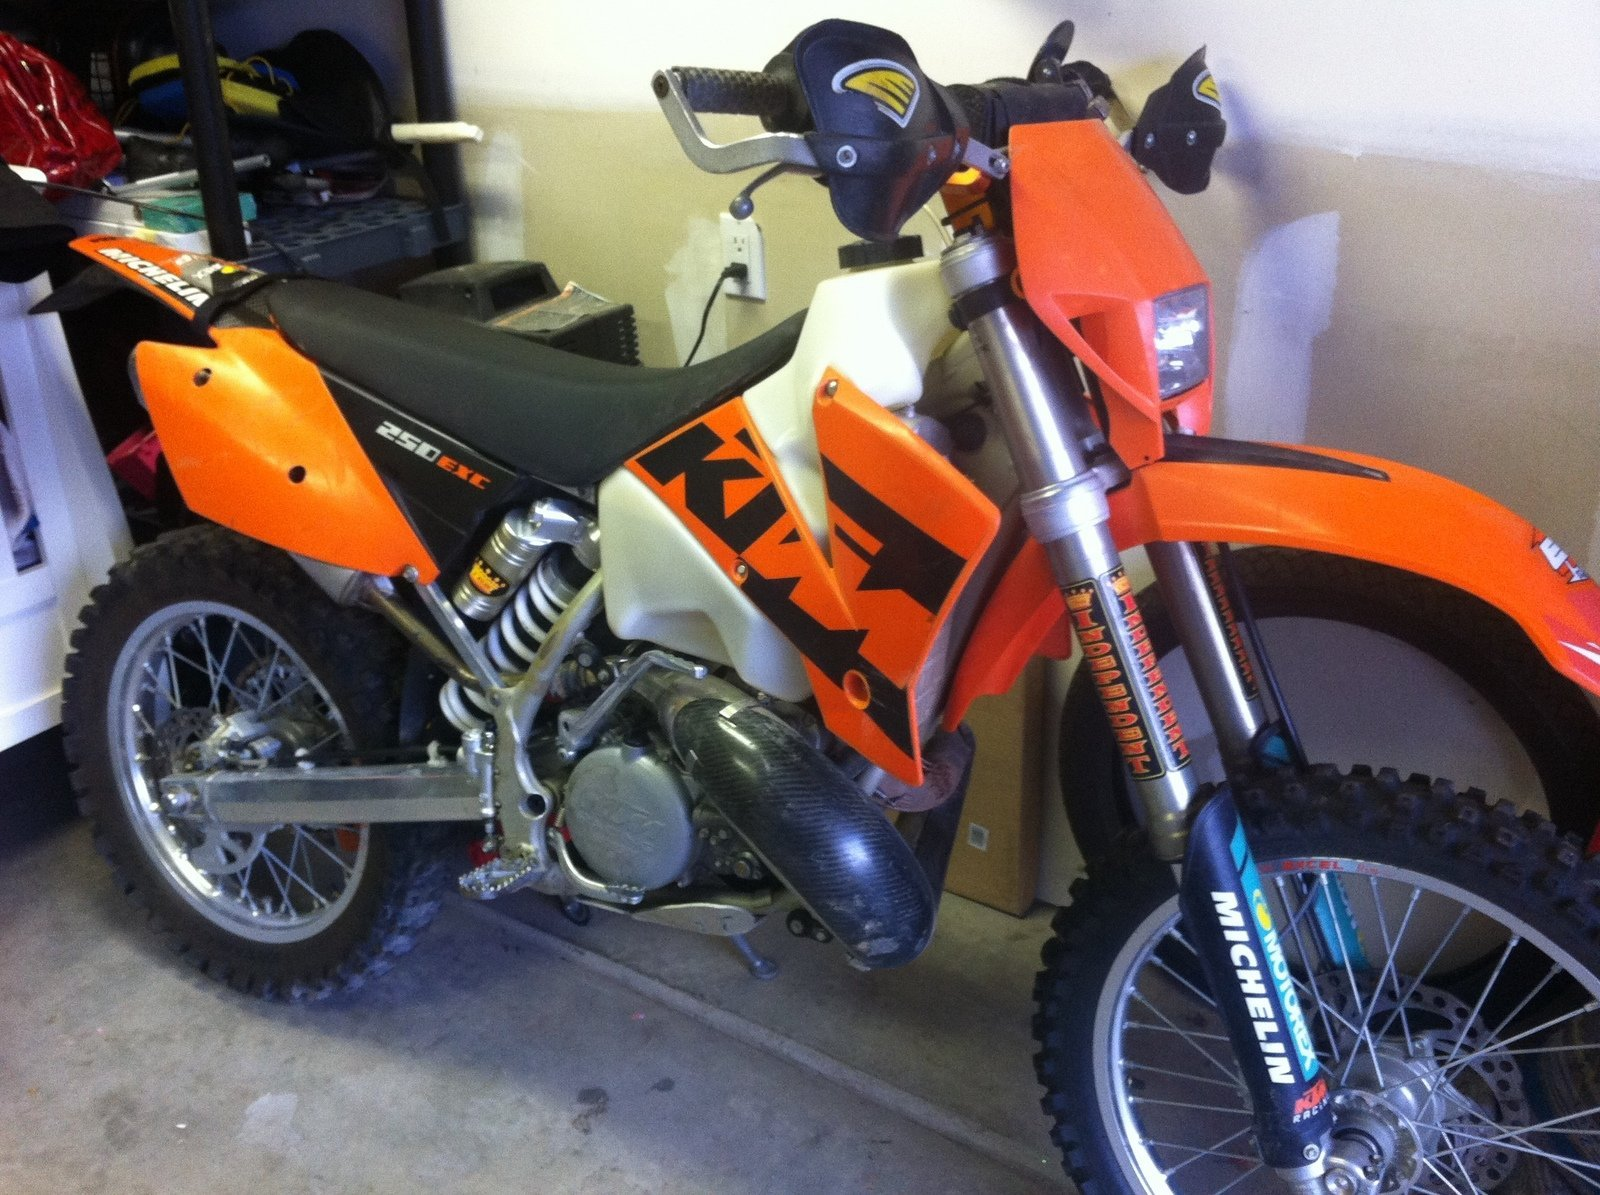 I Need A Horn And Brake Light On My Ktm With No Battery South Bay Wiring Diagram 125 Exc Six Days 200 So All To Do Is Throw An Electric Bike There Shes Ready For Inspection Plate